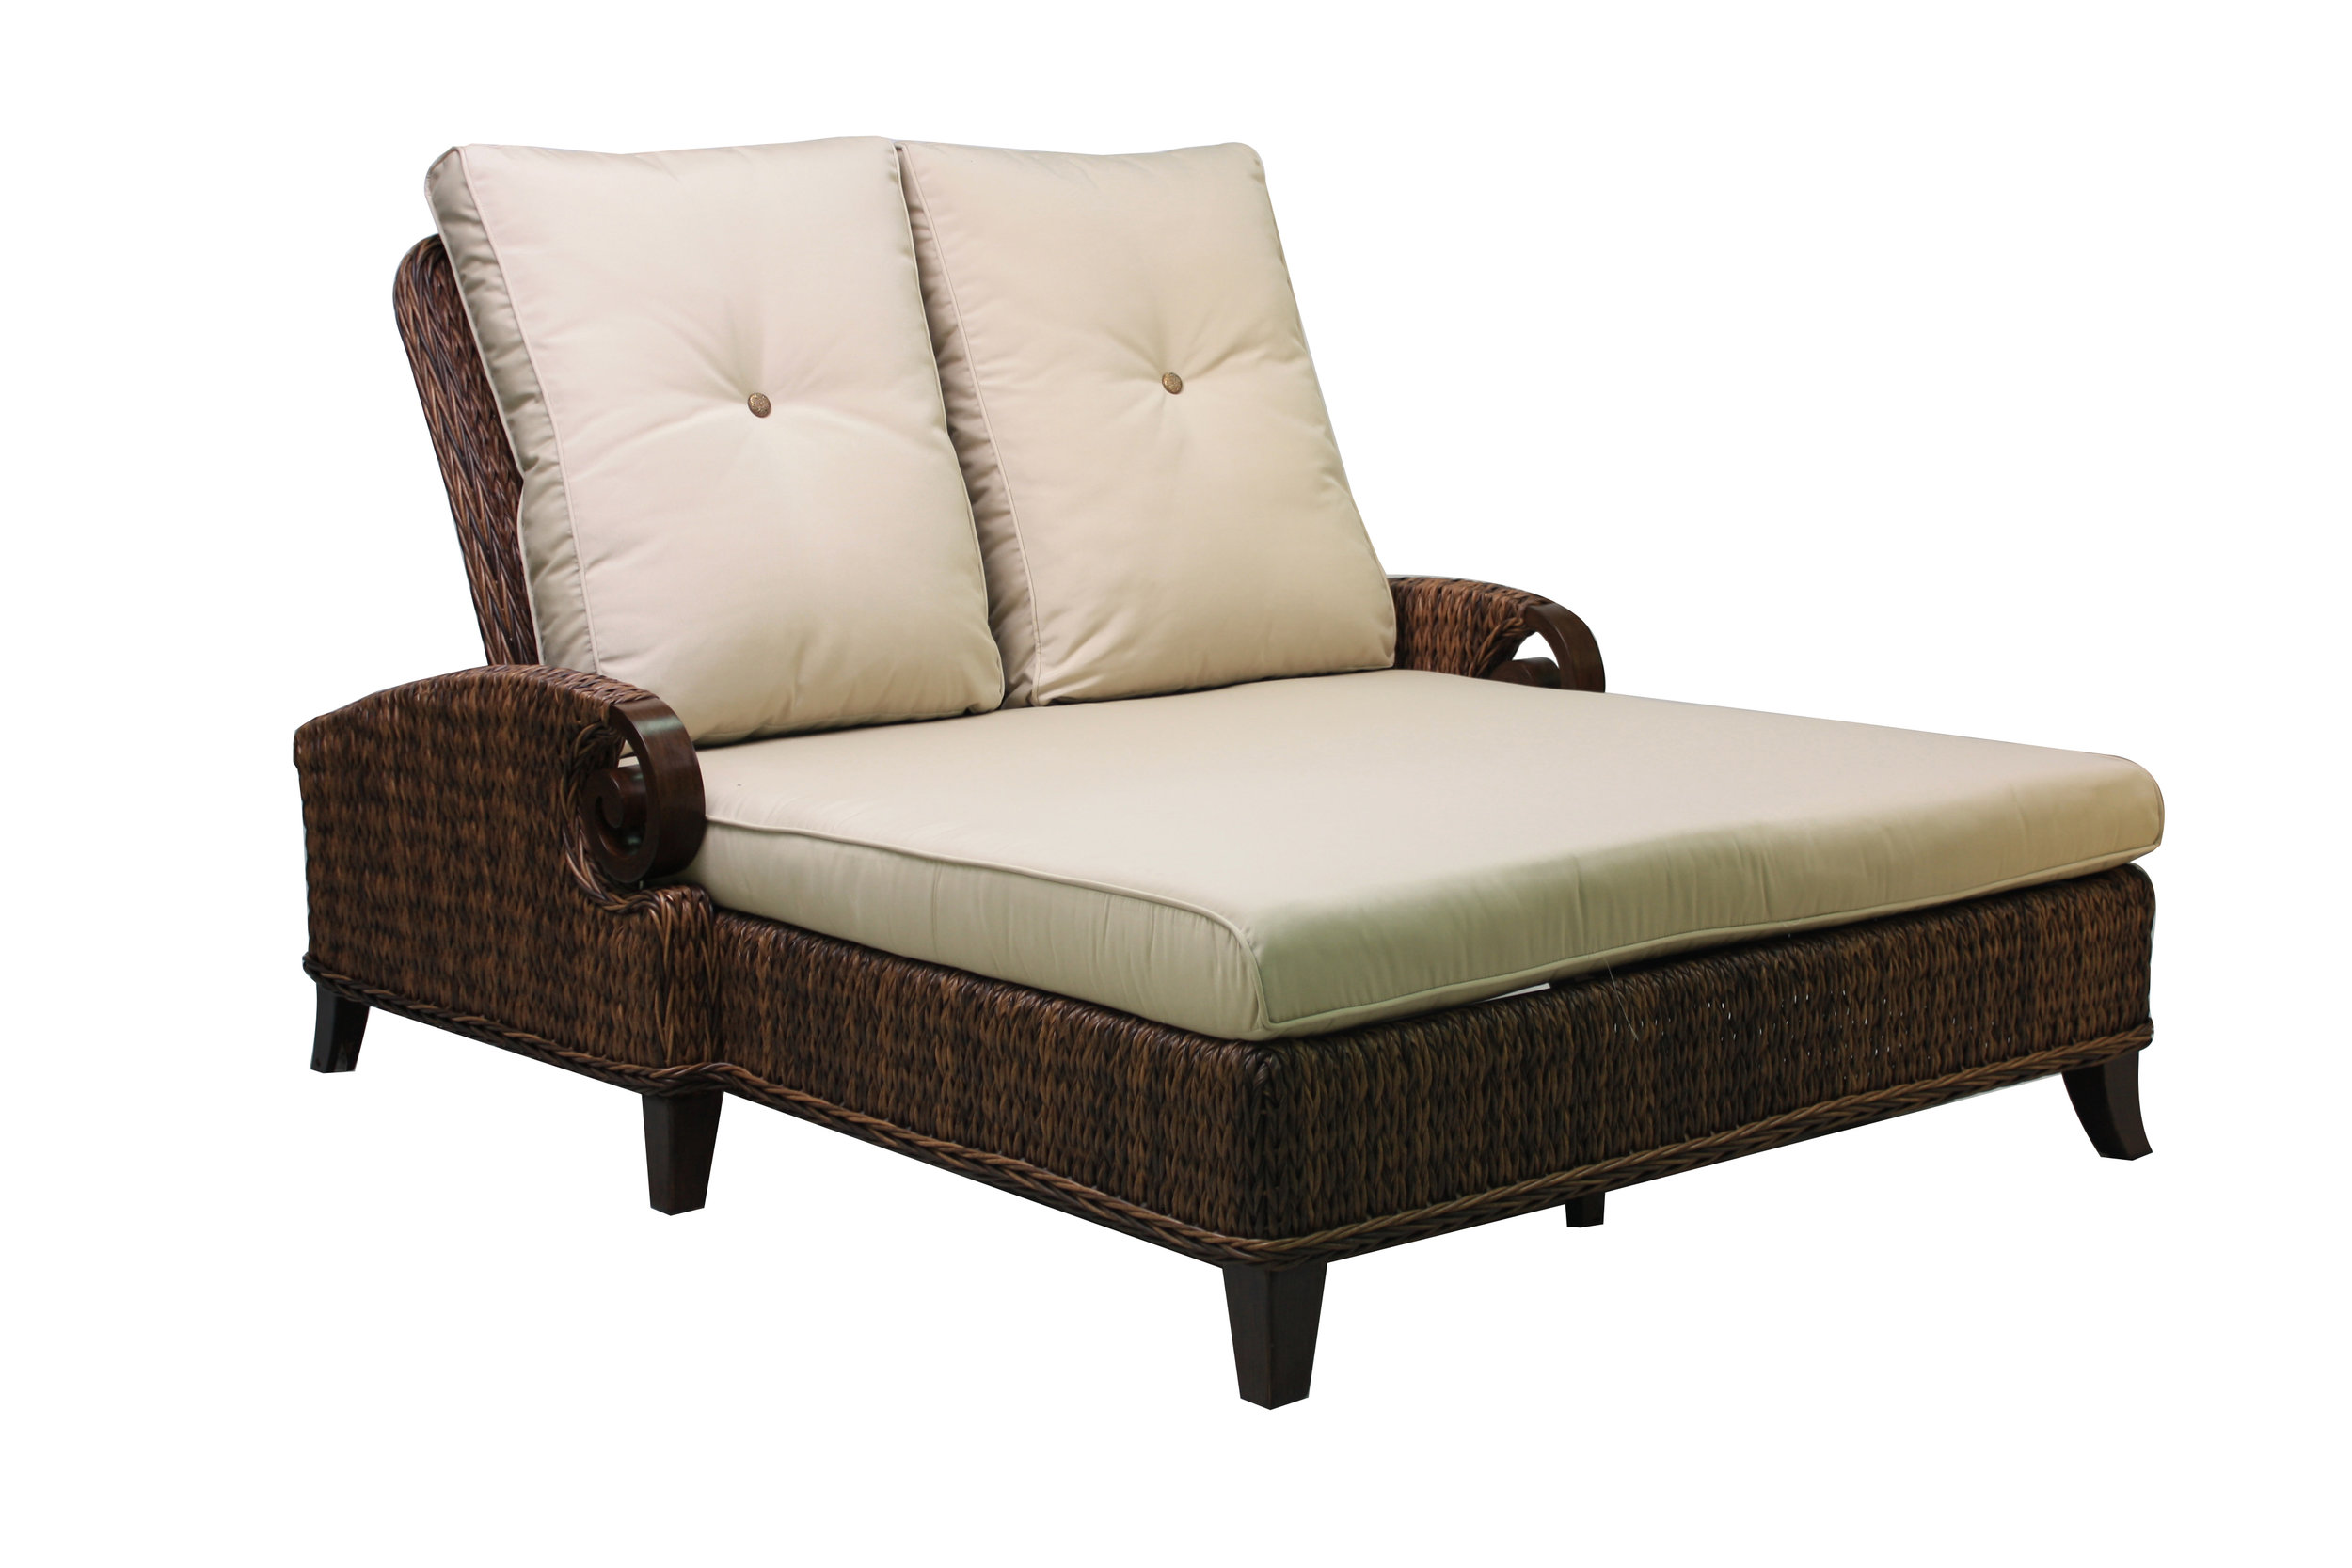 "973854 Antigua Double Adjustable Chaise   85.1"" x 56.5"" x 38.9"""